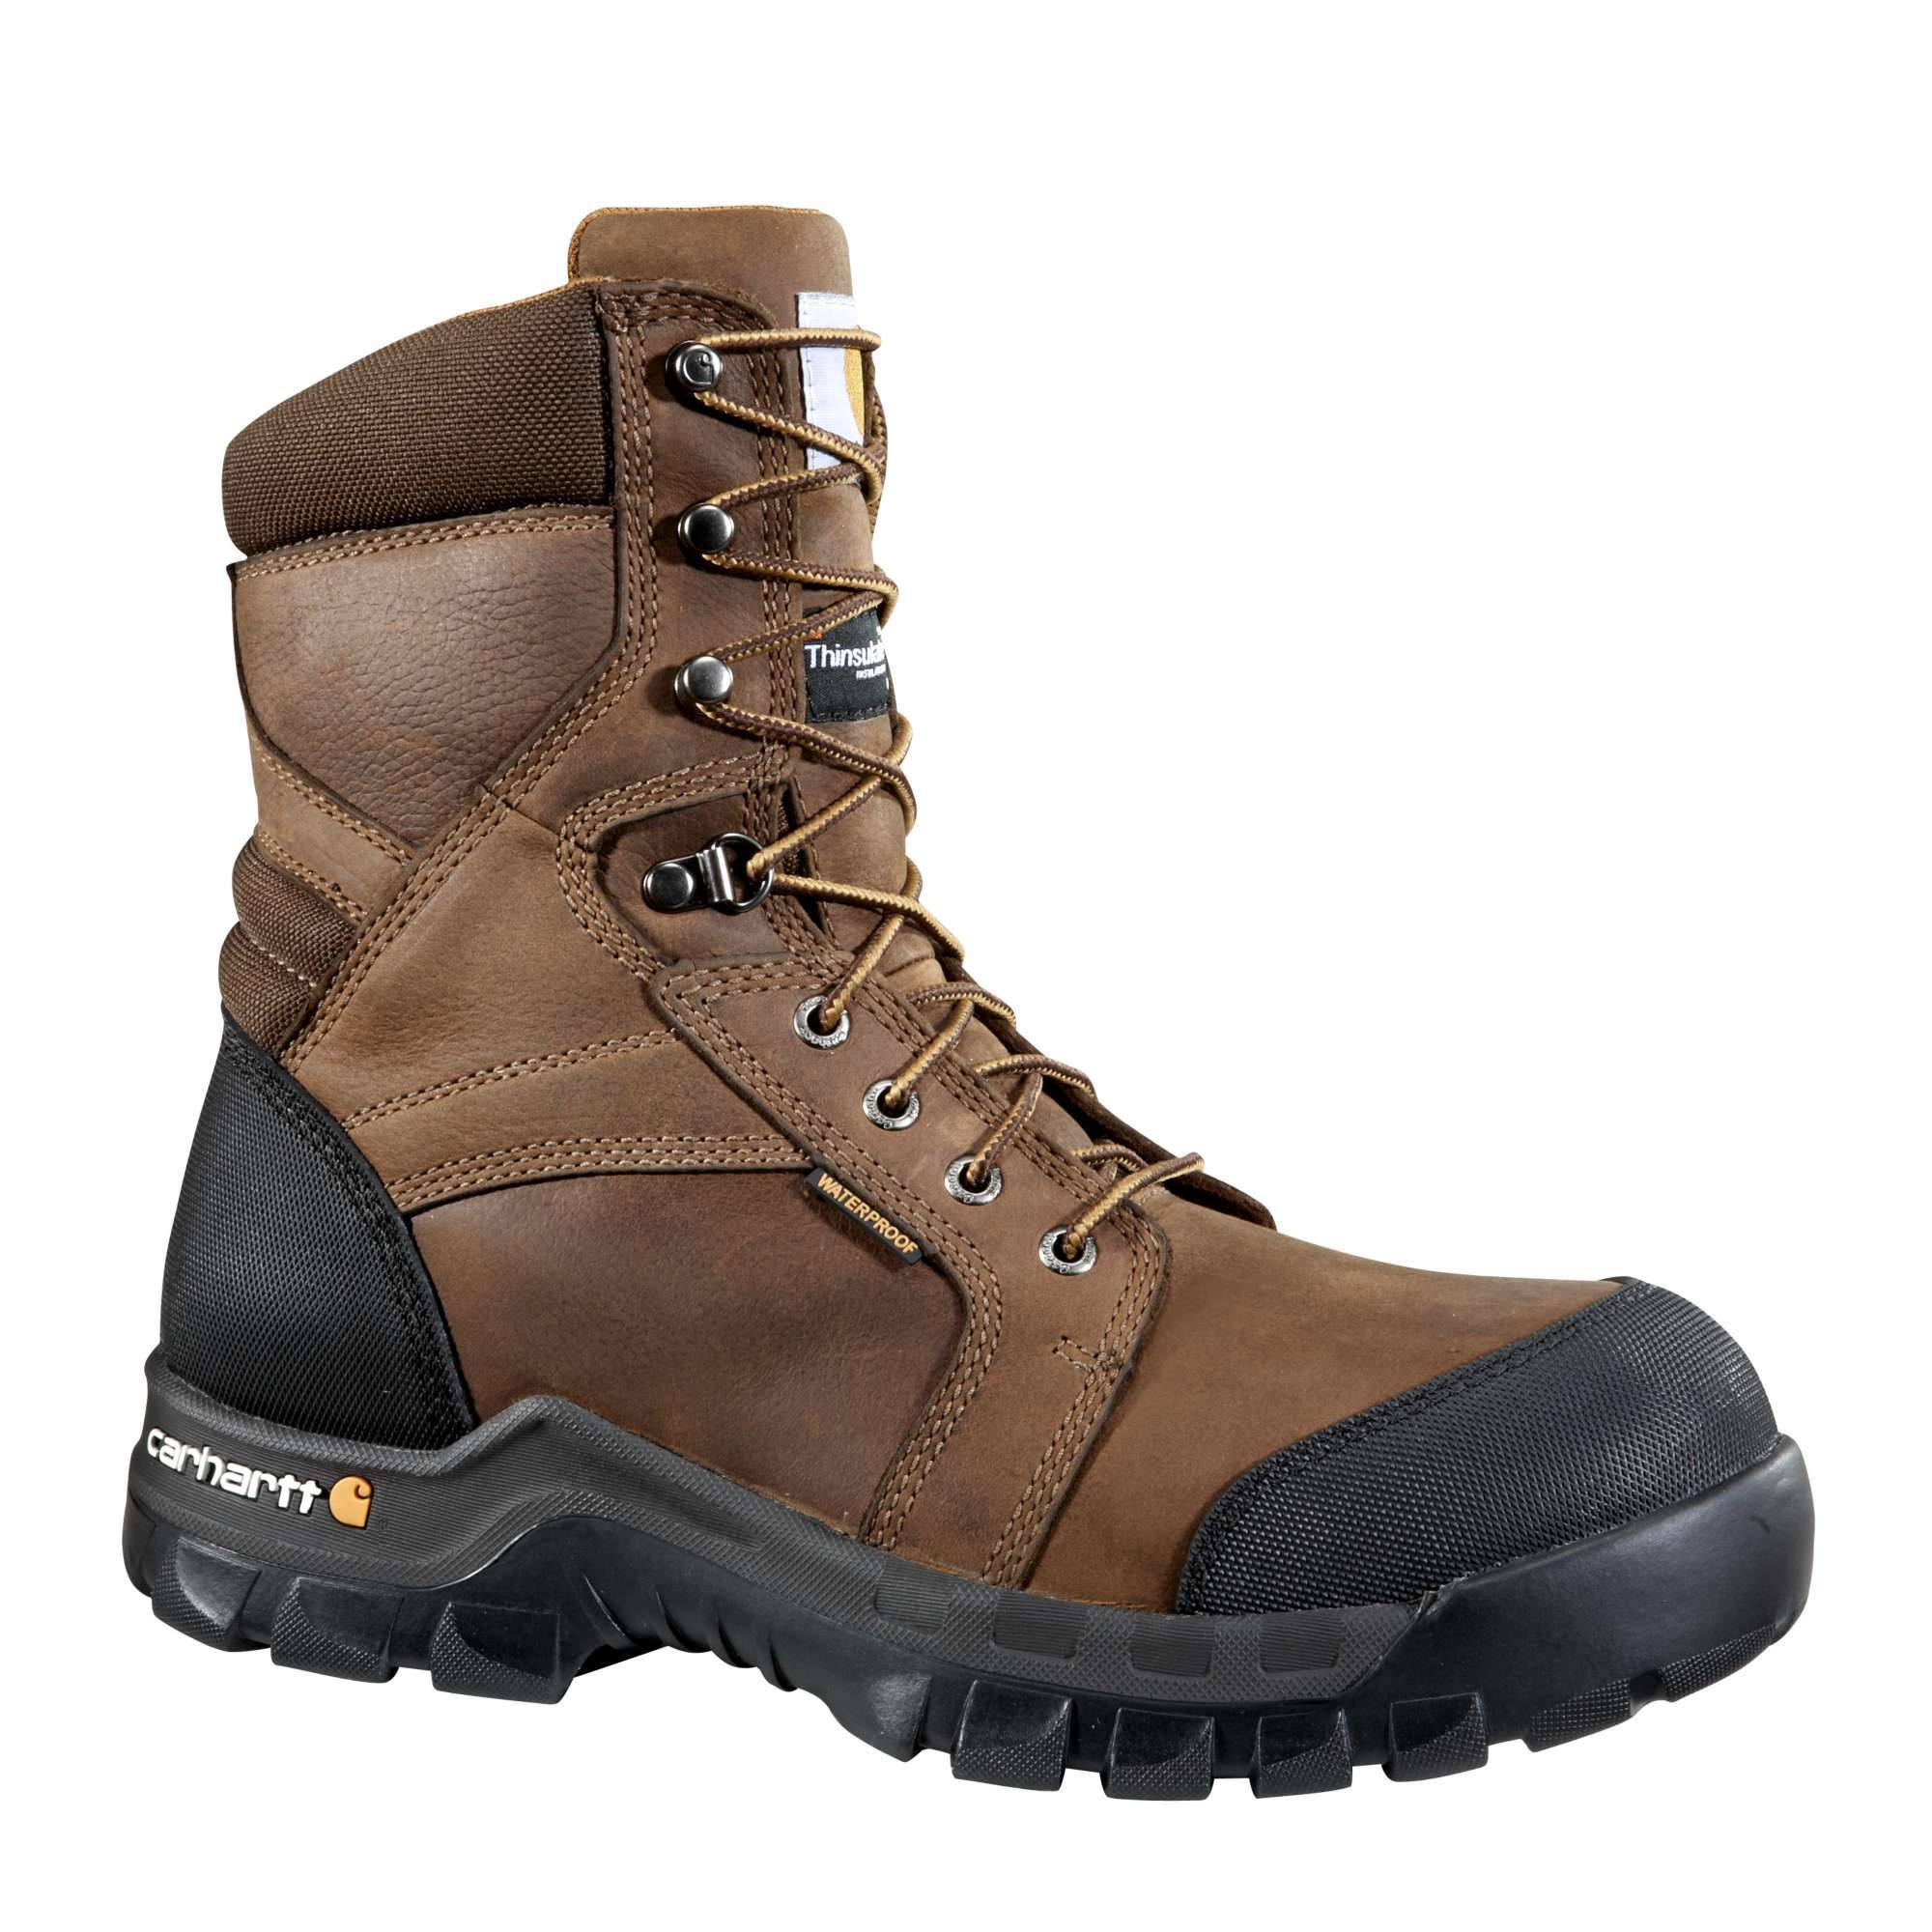 MEN'S RUGGED FLEX® 8-INCH INSULATED COMPOSITE TOE WORK BOOT